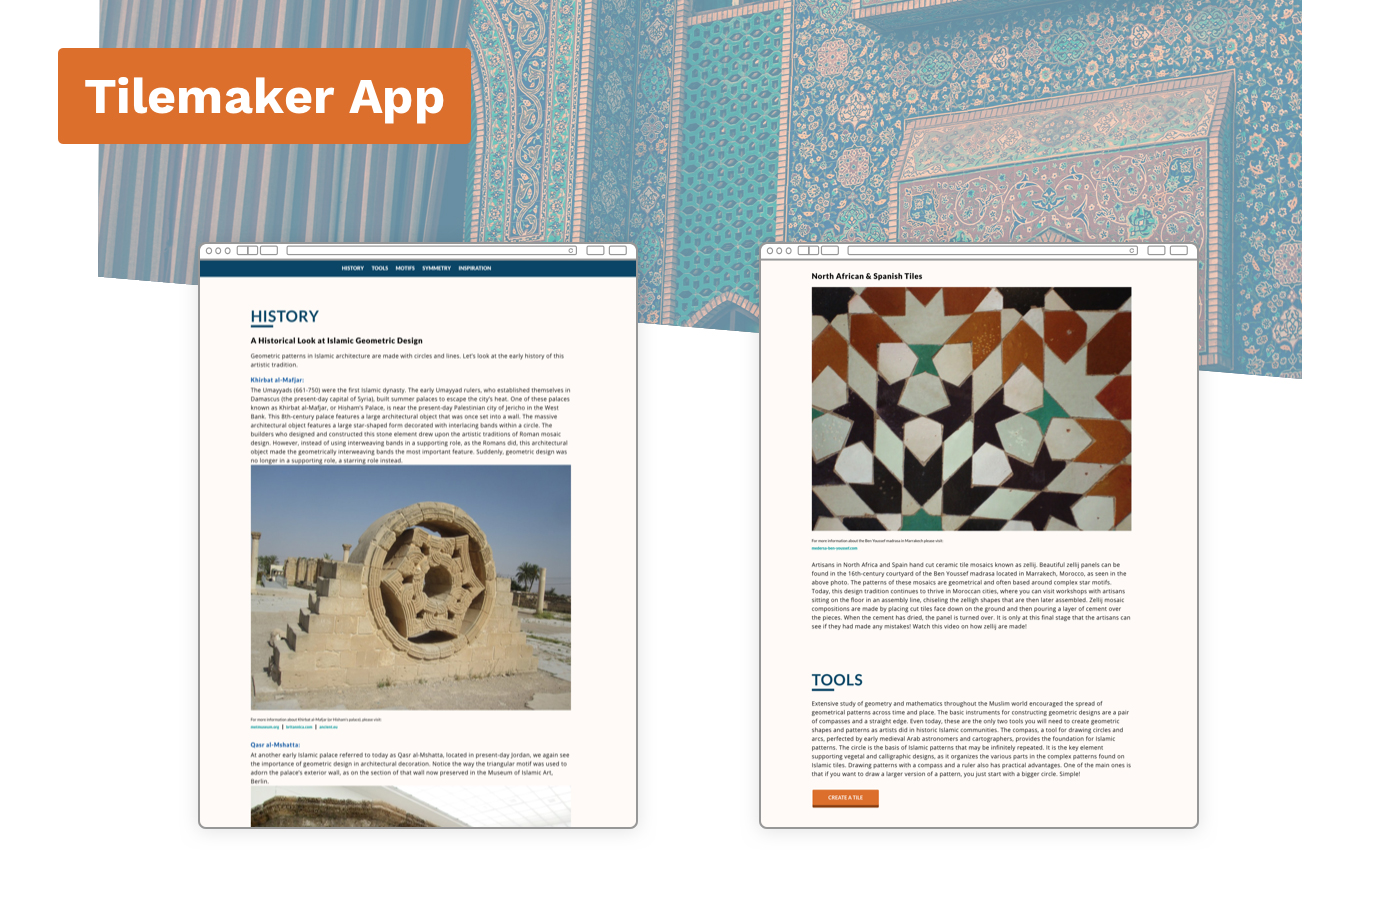 Two webpages displaying information about geometric design from the Tilemaker website.